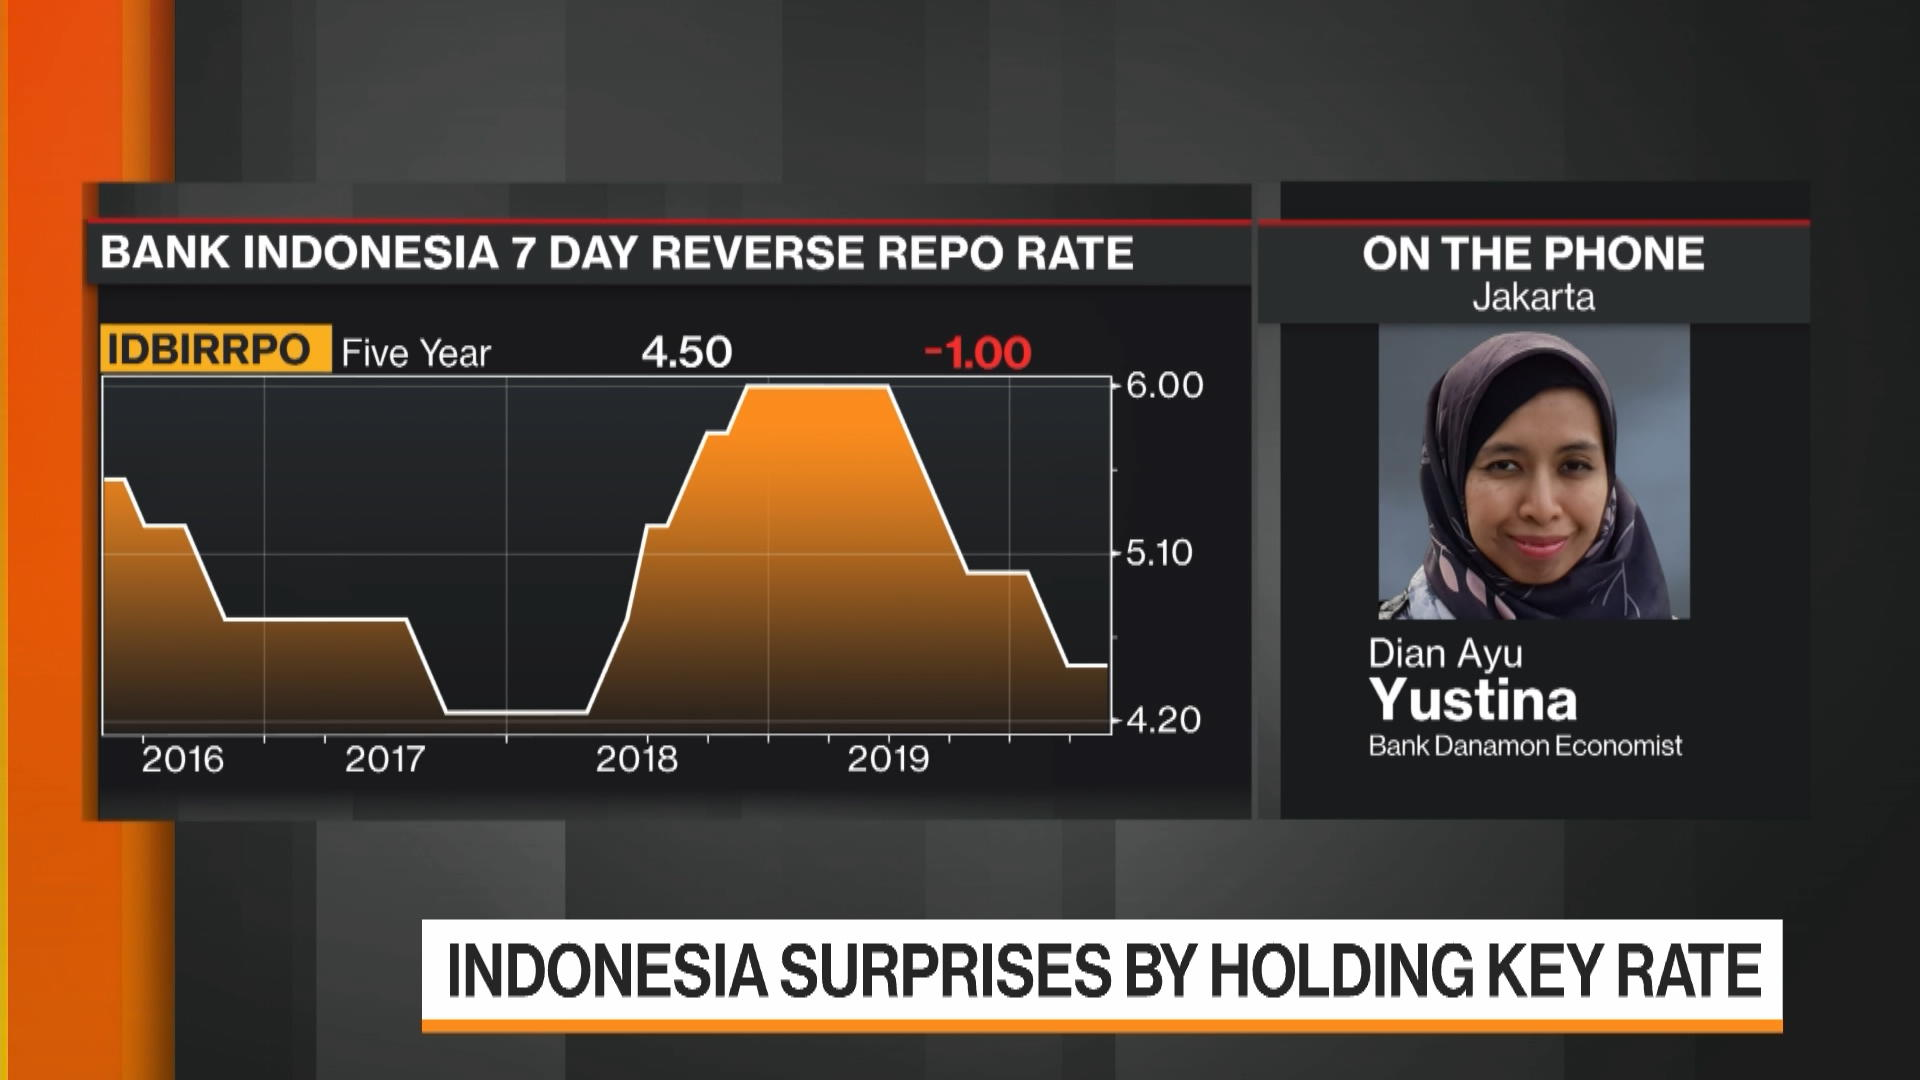 BDMN Indonesia Has Room To Lower Rates Further, Bank Danamon Says - Bloomberg